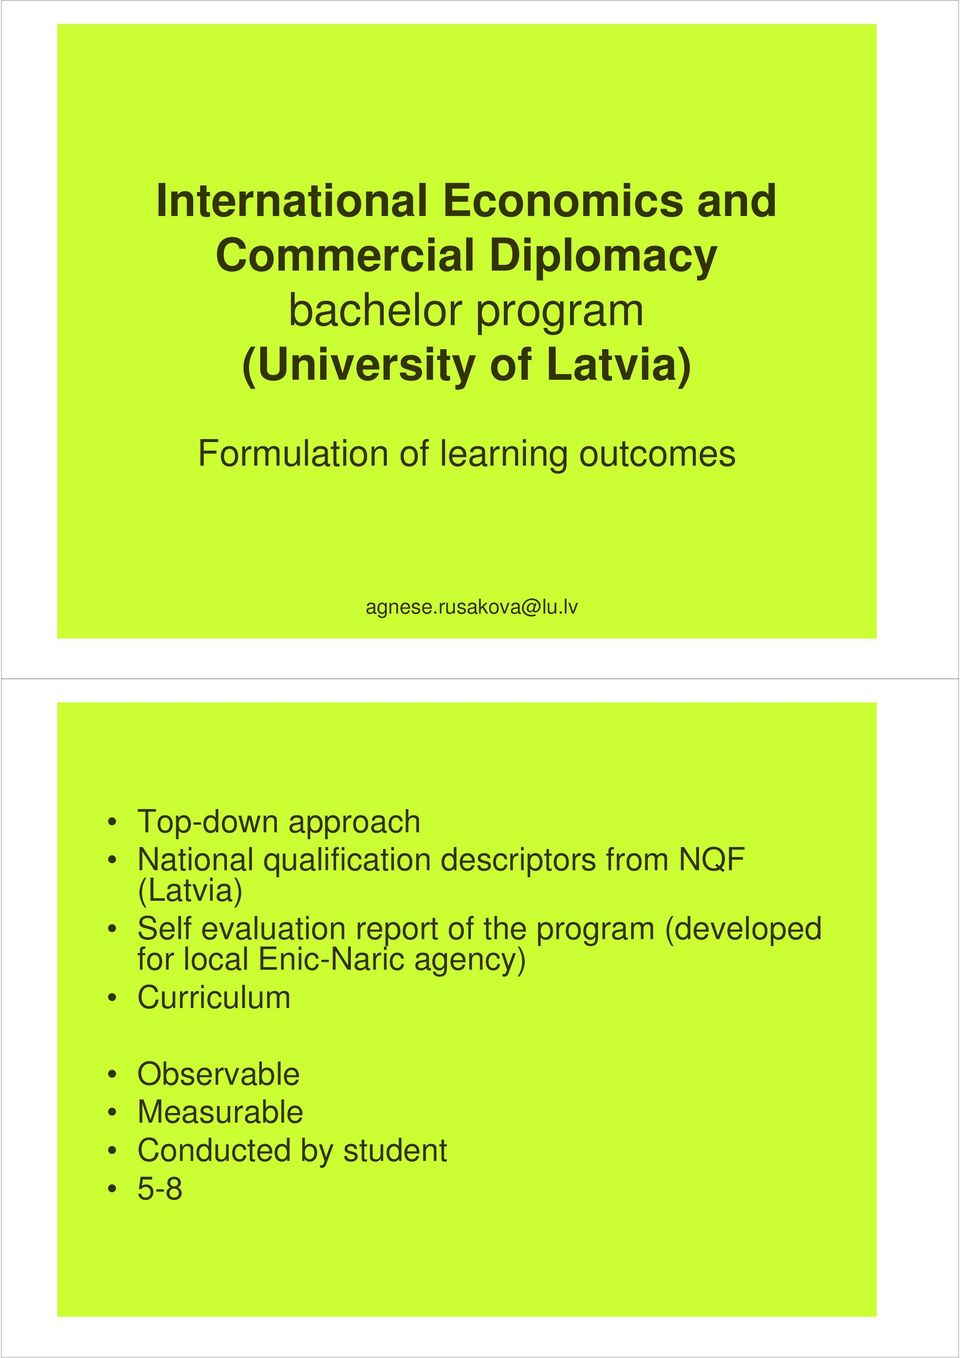 lv Top-down approach National qualification descriptors from NQF (Latvia) Self